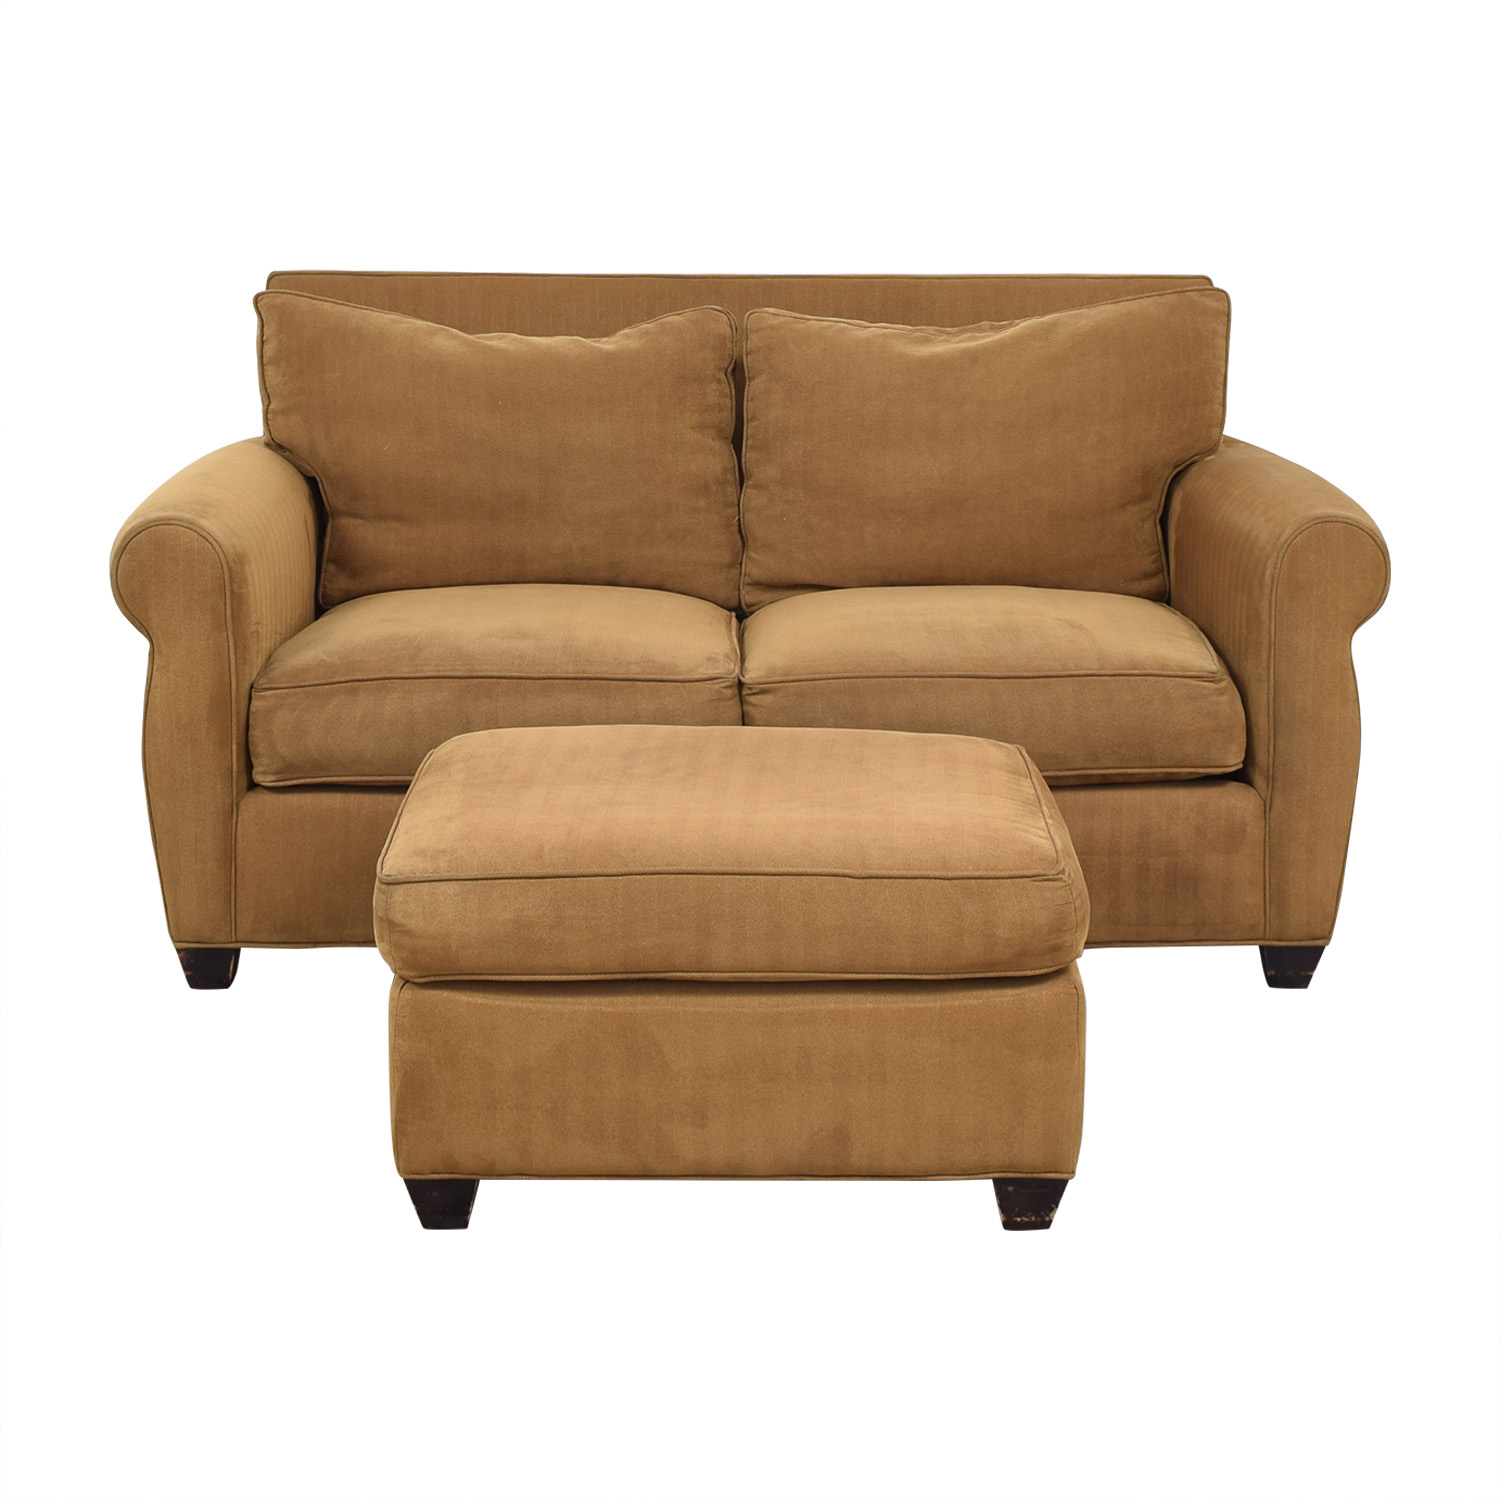 Domain Home Domain Home Sofa and Ottoman coupon